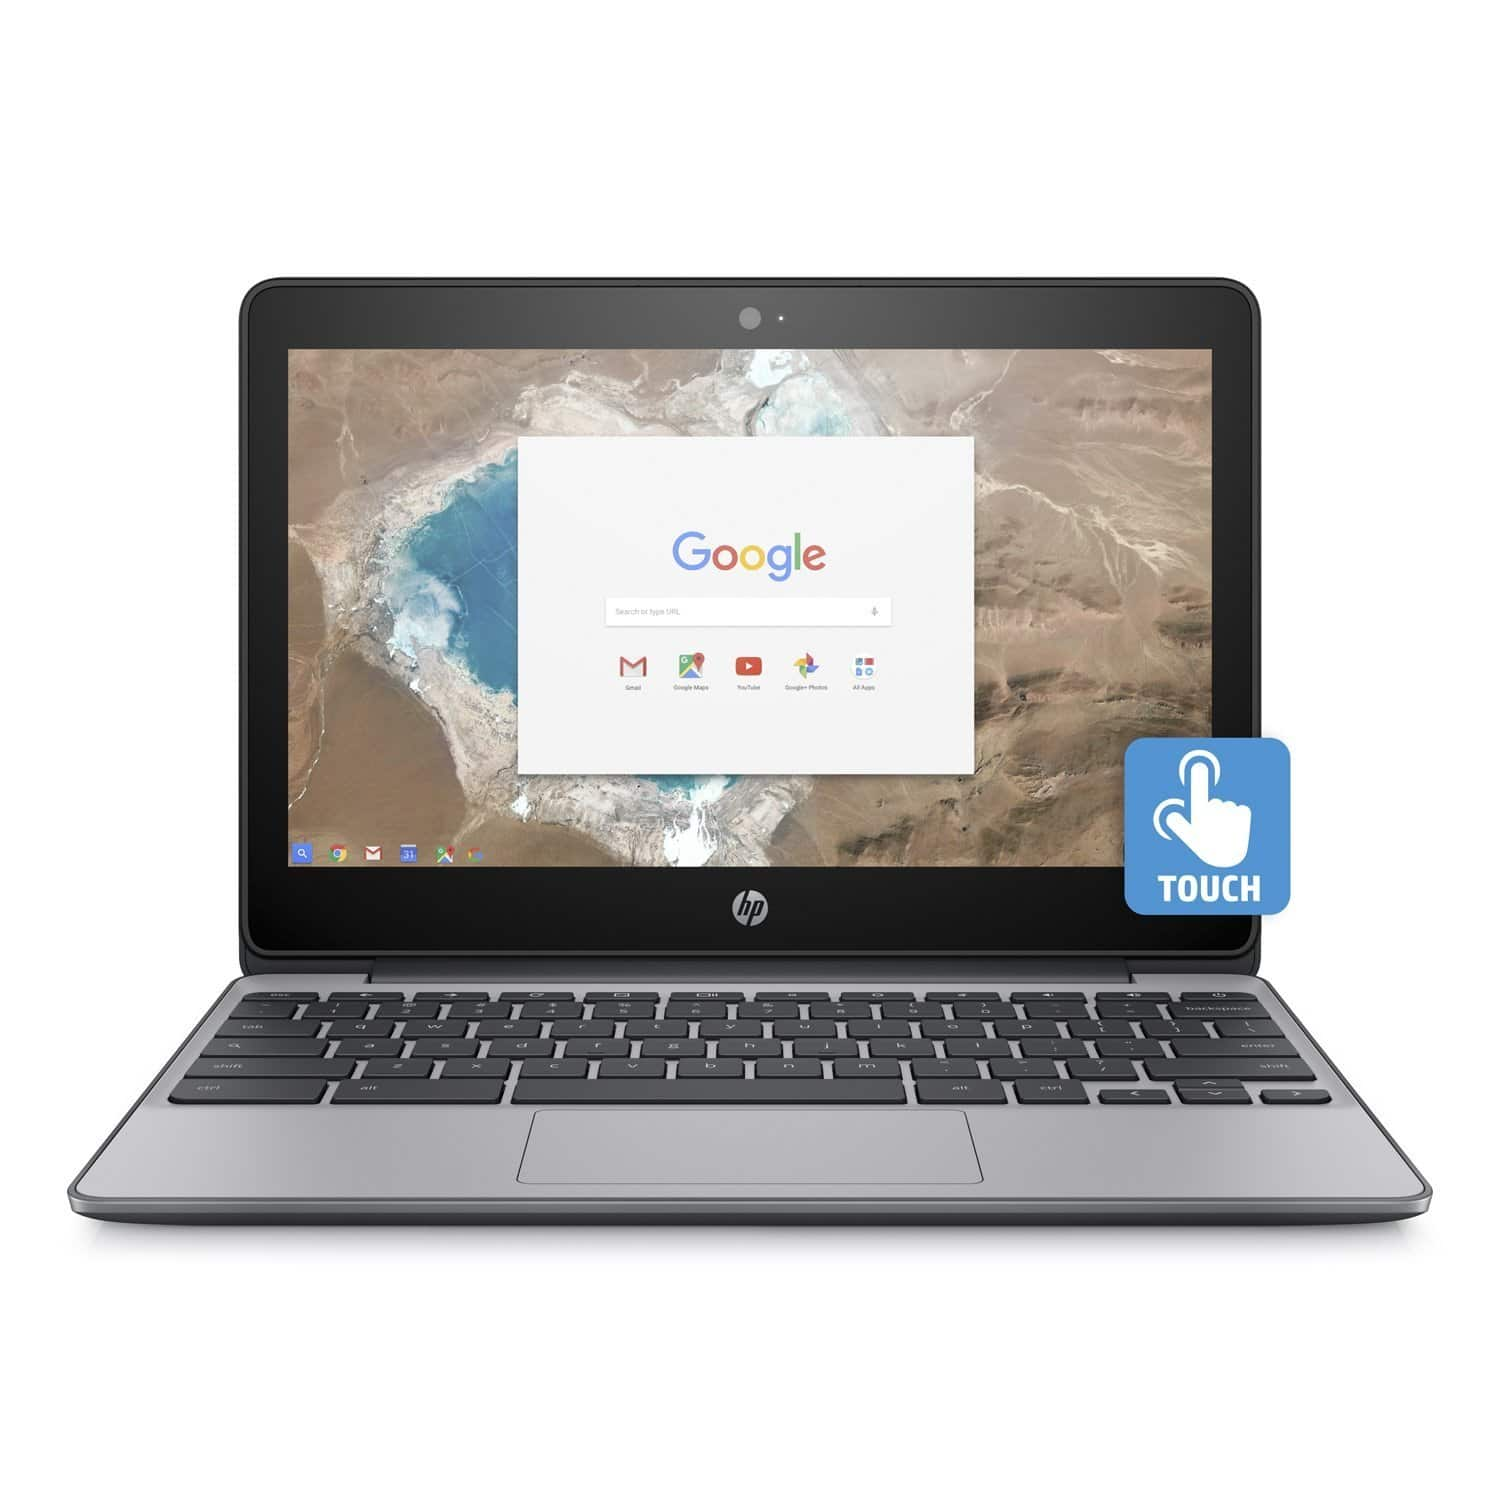 "HP 11-V025WM 11.6"" Touchscreen 16GB Chromebook, N3060 1.6GHZ 4GB WiFi (Refurbished) for $134.95 + Free Shipping"